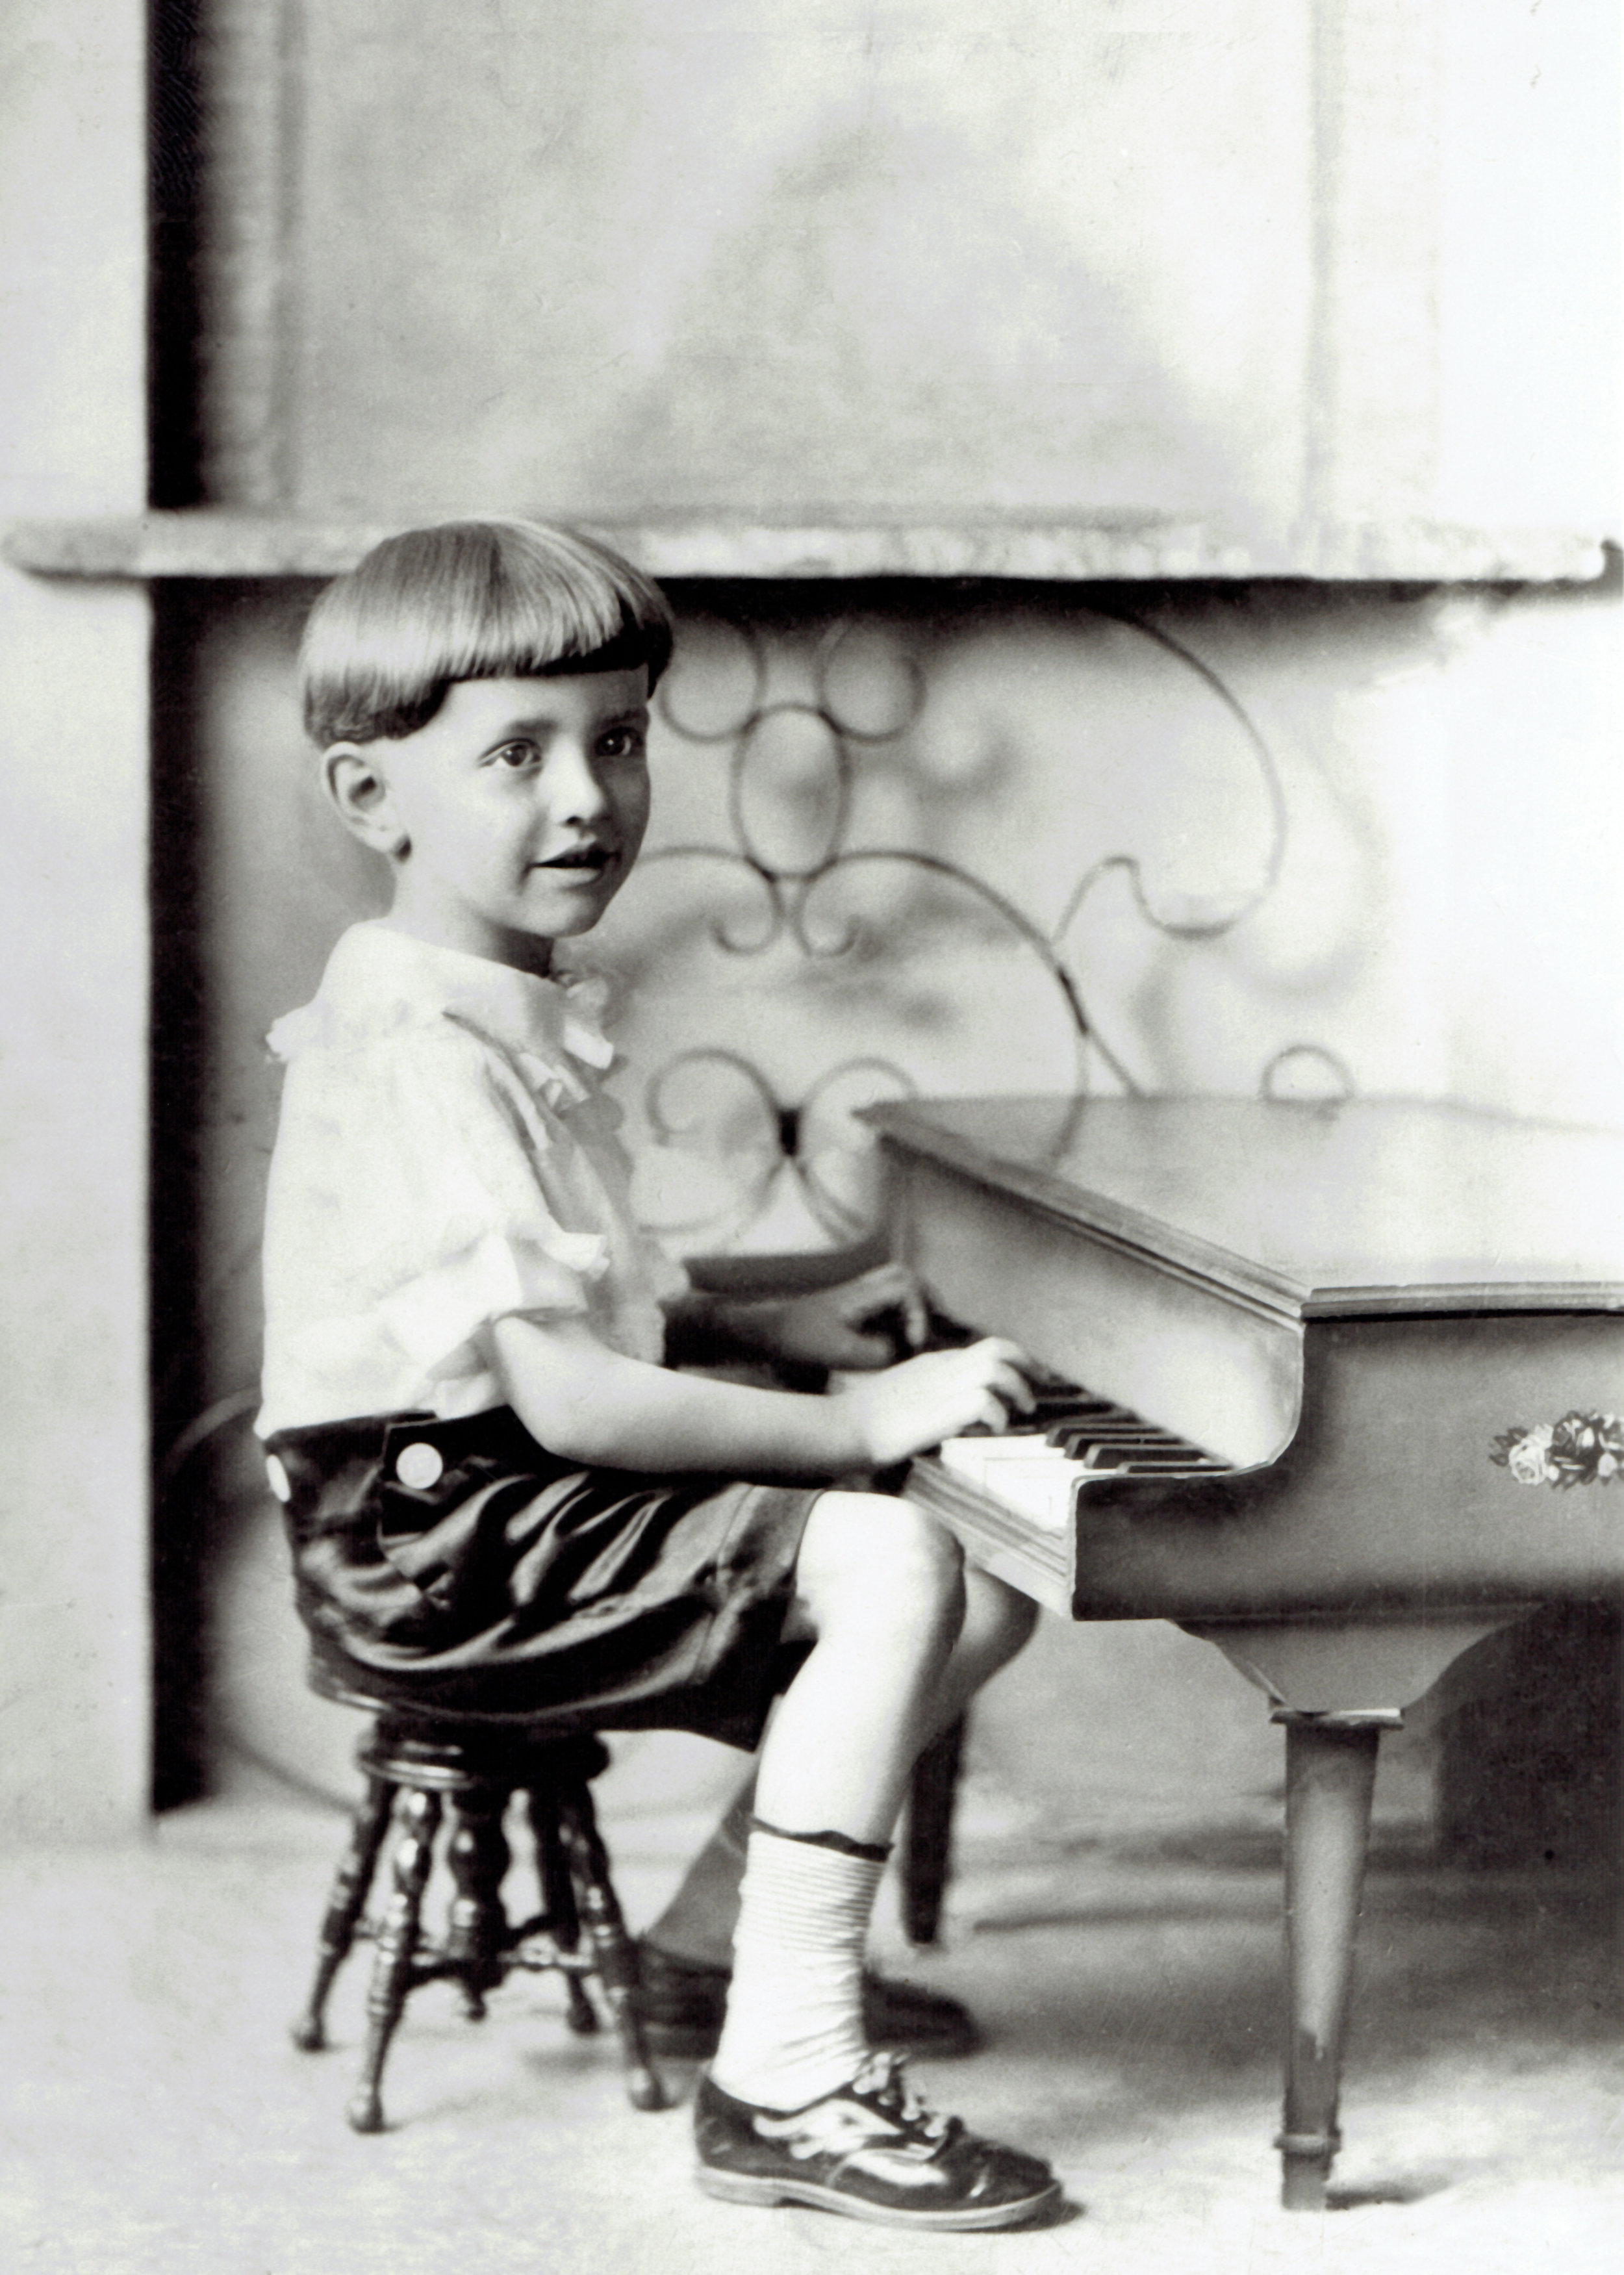 Roger at three years old.